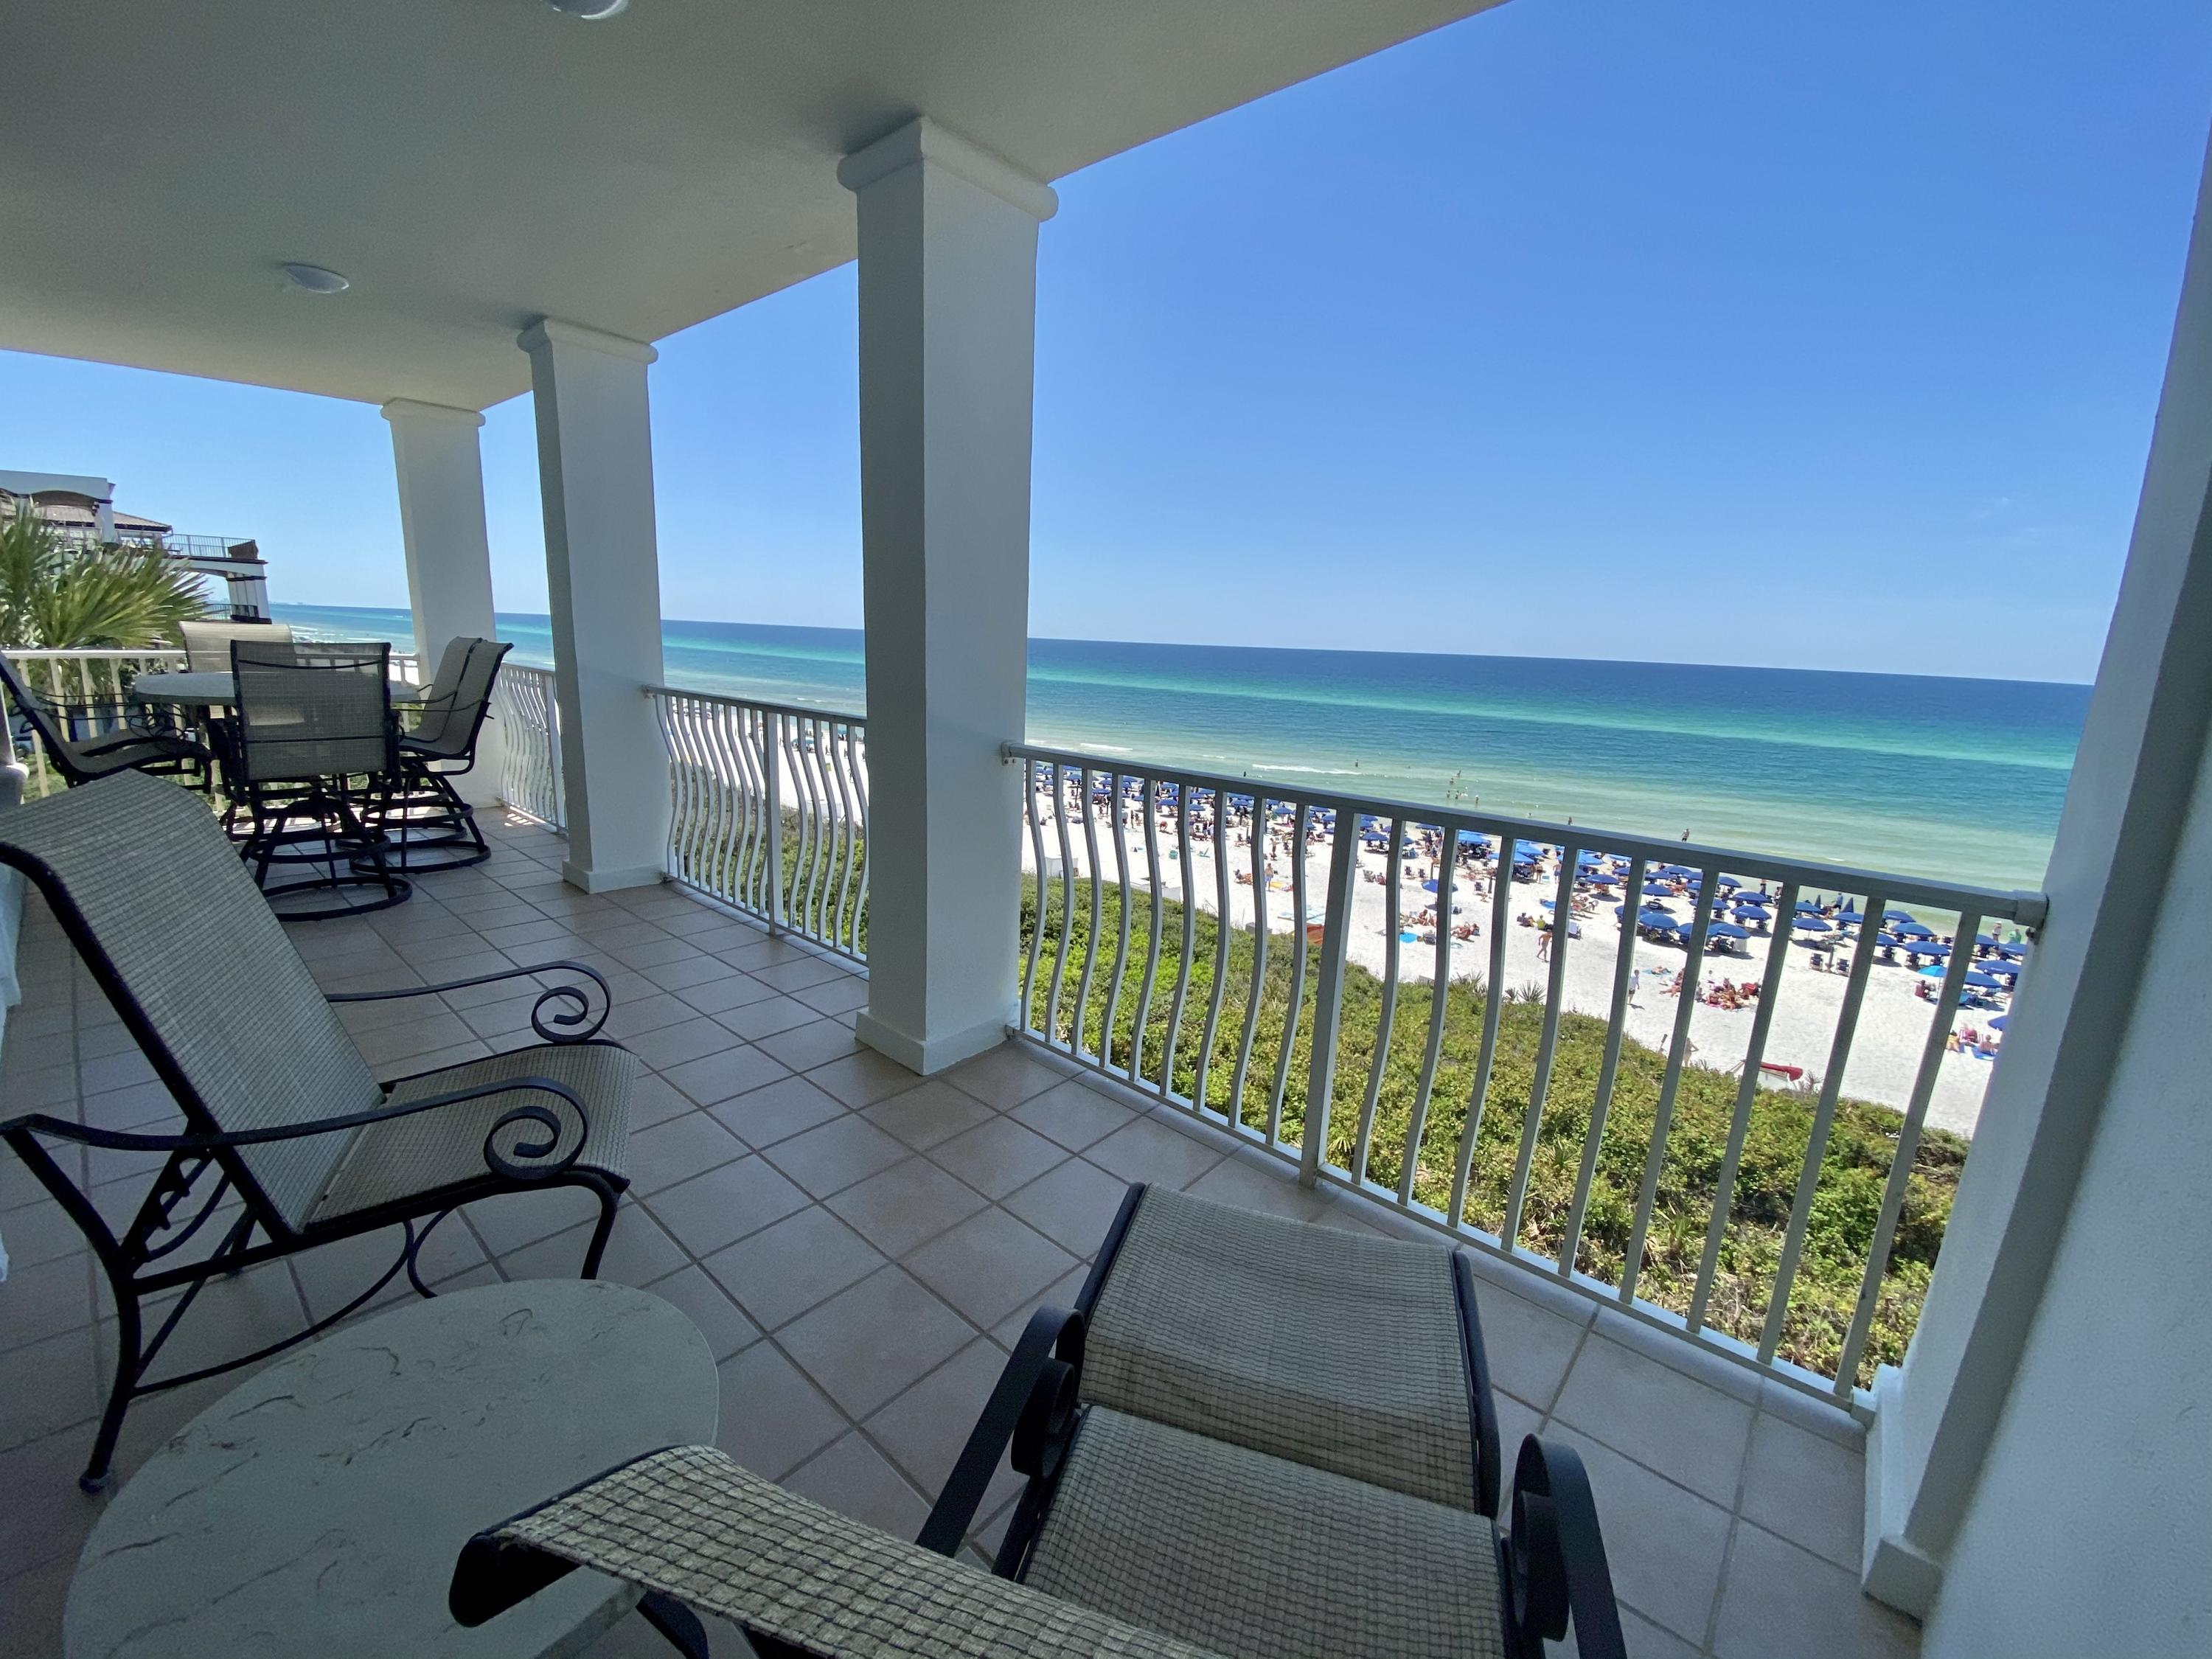 SPECTACULAR GULF FRONT CONDOMINIUM located in the highly sought after community of THE VILLAS OF SUNSET BEACH. Situated along the East end of Scenic highway 30-A, between Rosemary Beach and Alys Beach, this 3 bed/3bath condo offers a spacious layout with breathtaking views of the Gulf of Mexico. A large living space fronts the Gulf and steps out on to an oversized balcony for endless enjoyment of captivating Gulf views. Ideal as a vacation home or an investment property, you and your guests will be immersed in a world of luxury and comfort. This gated community offers 24 hour guarded security, a beautiful private Gulf front pool, and private beach access.This unit has never been rented. All 3 buildings have new roofs post Hurricane Michael. Entire building exterior was painted in 2020. French doors accessing the spacious deck overlooking the Gulf of Mexico recently replaced. (Deck size is 27 x 8) Brand New HVAC March 2021. Fresh paint throughout. Turn Key ready!!! Come find your perfect place in the sun!